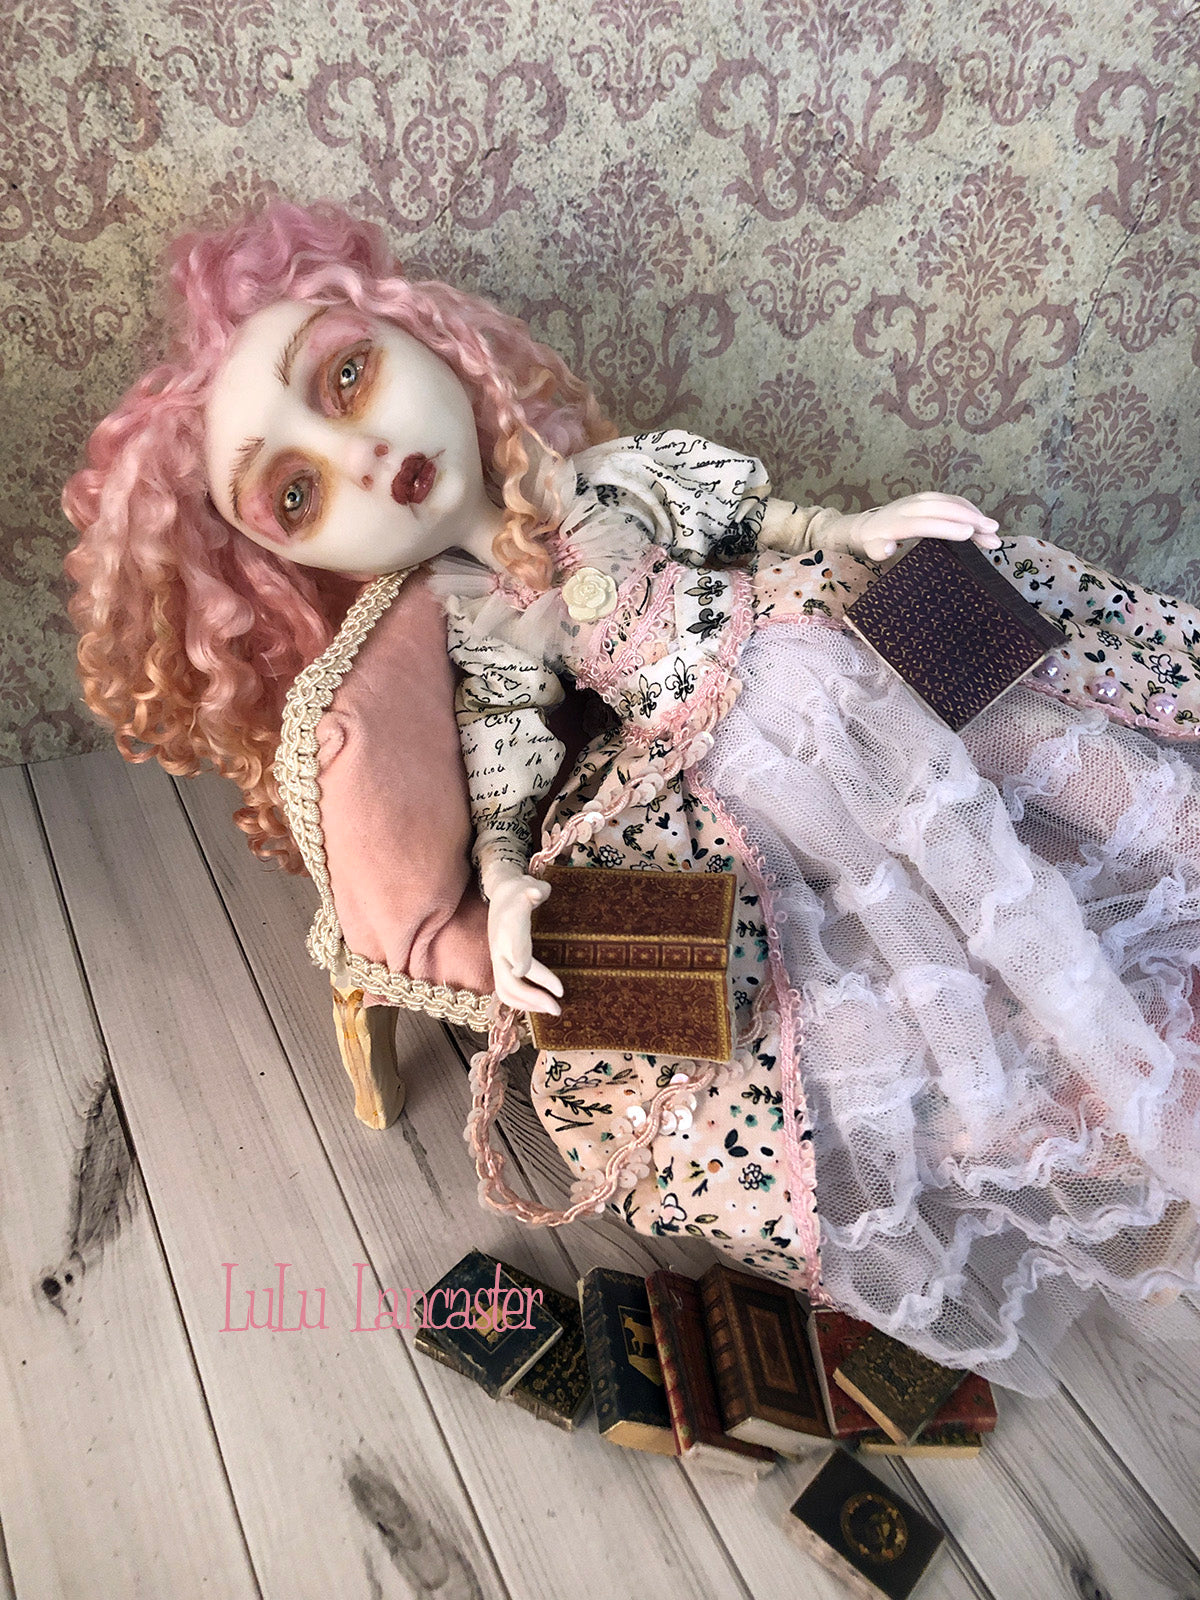 Dita Victorian Lady Original Art Doll by LuLu Lancaster